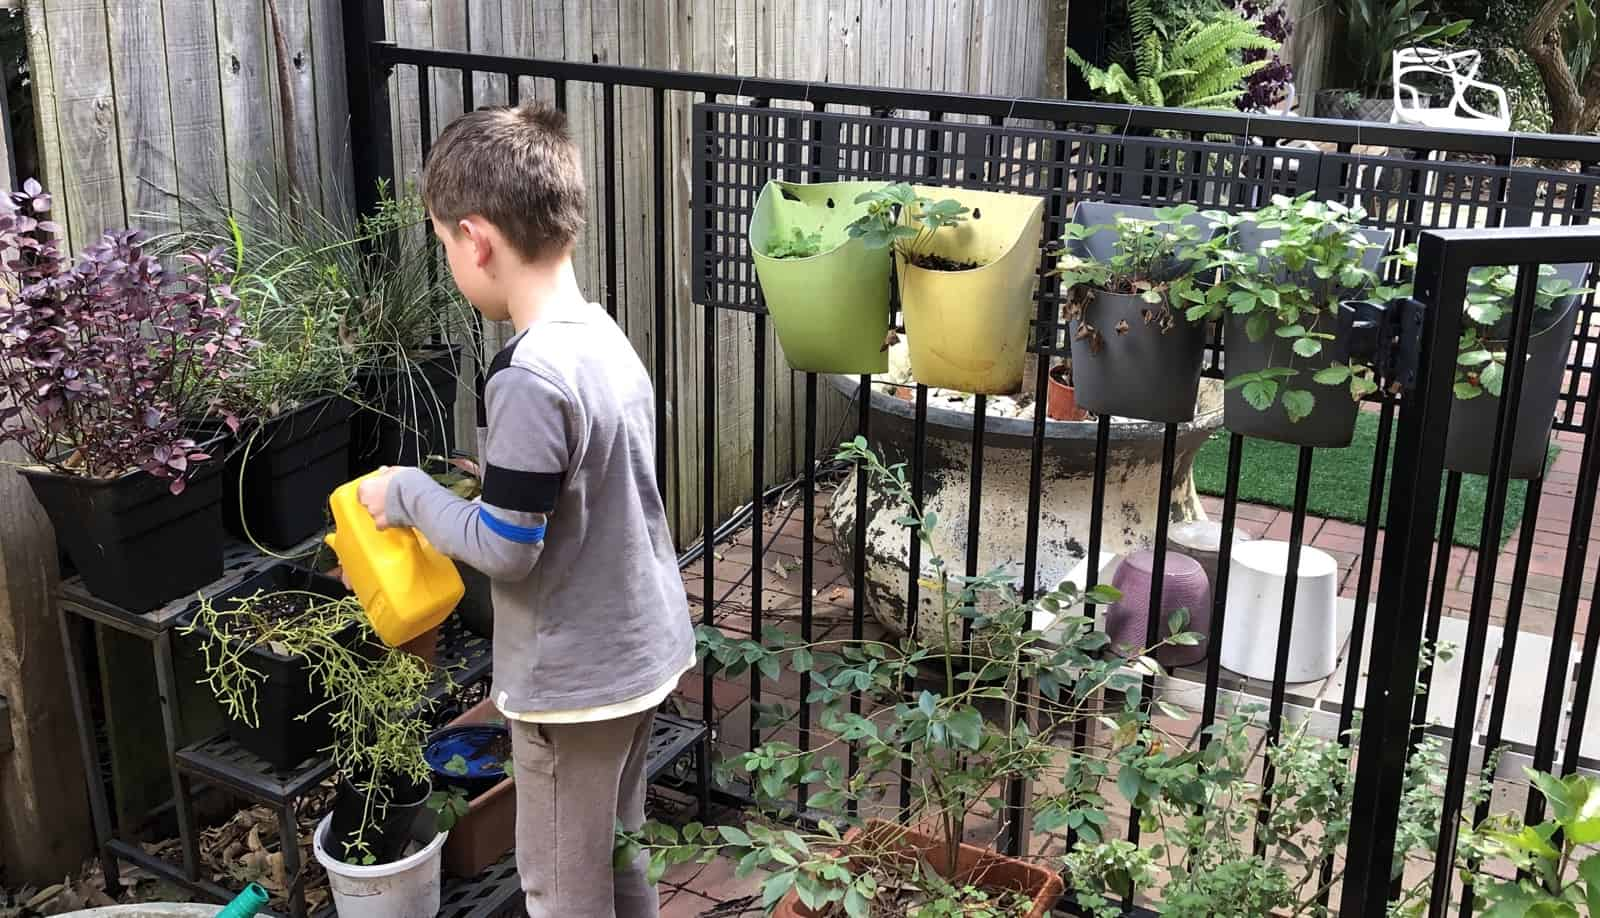 Watering the plants at the end of the day is a part of Montessori chores.